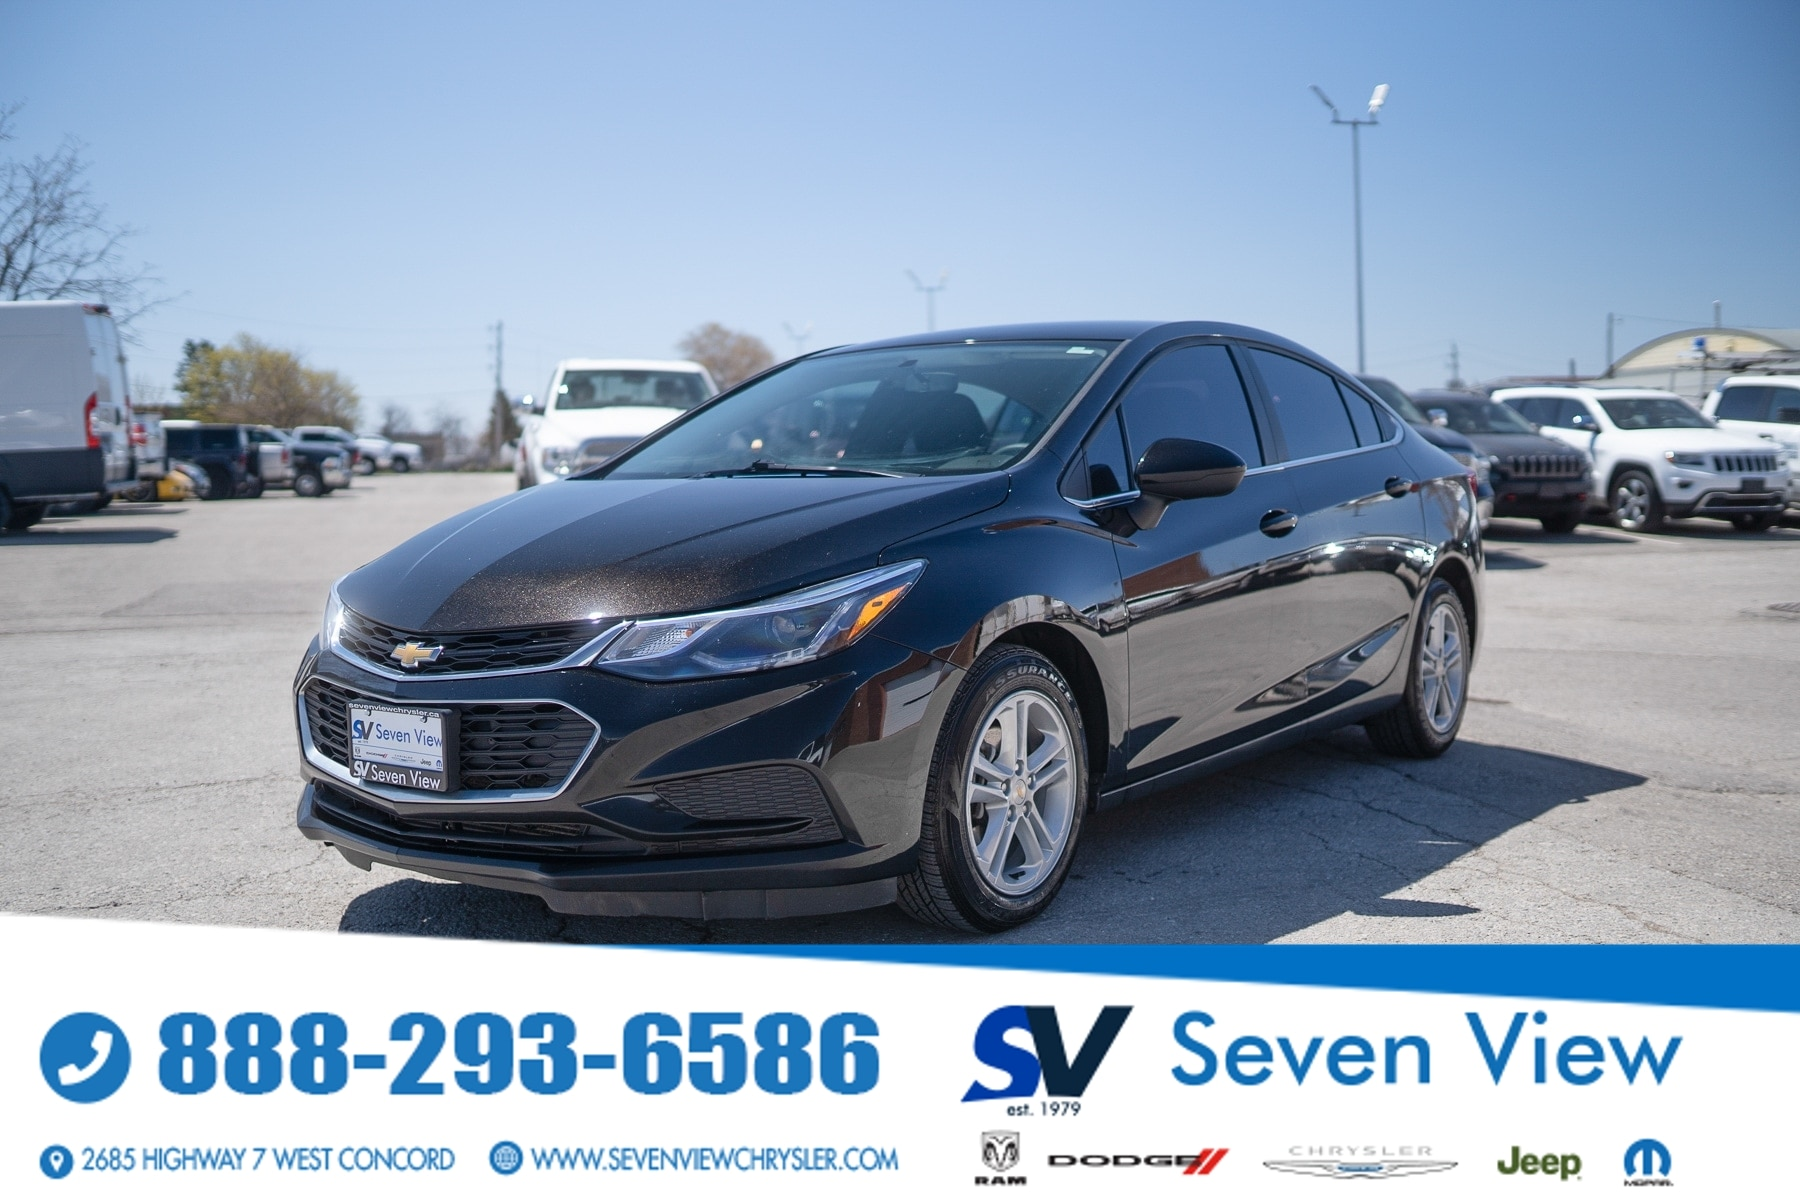 used 2018 Chevrolet Cruze car, priced at $11,277